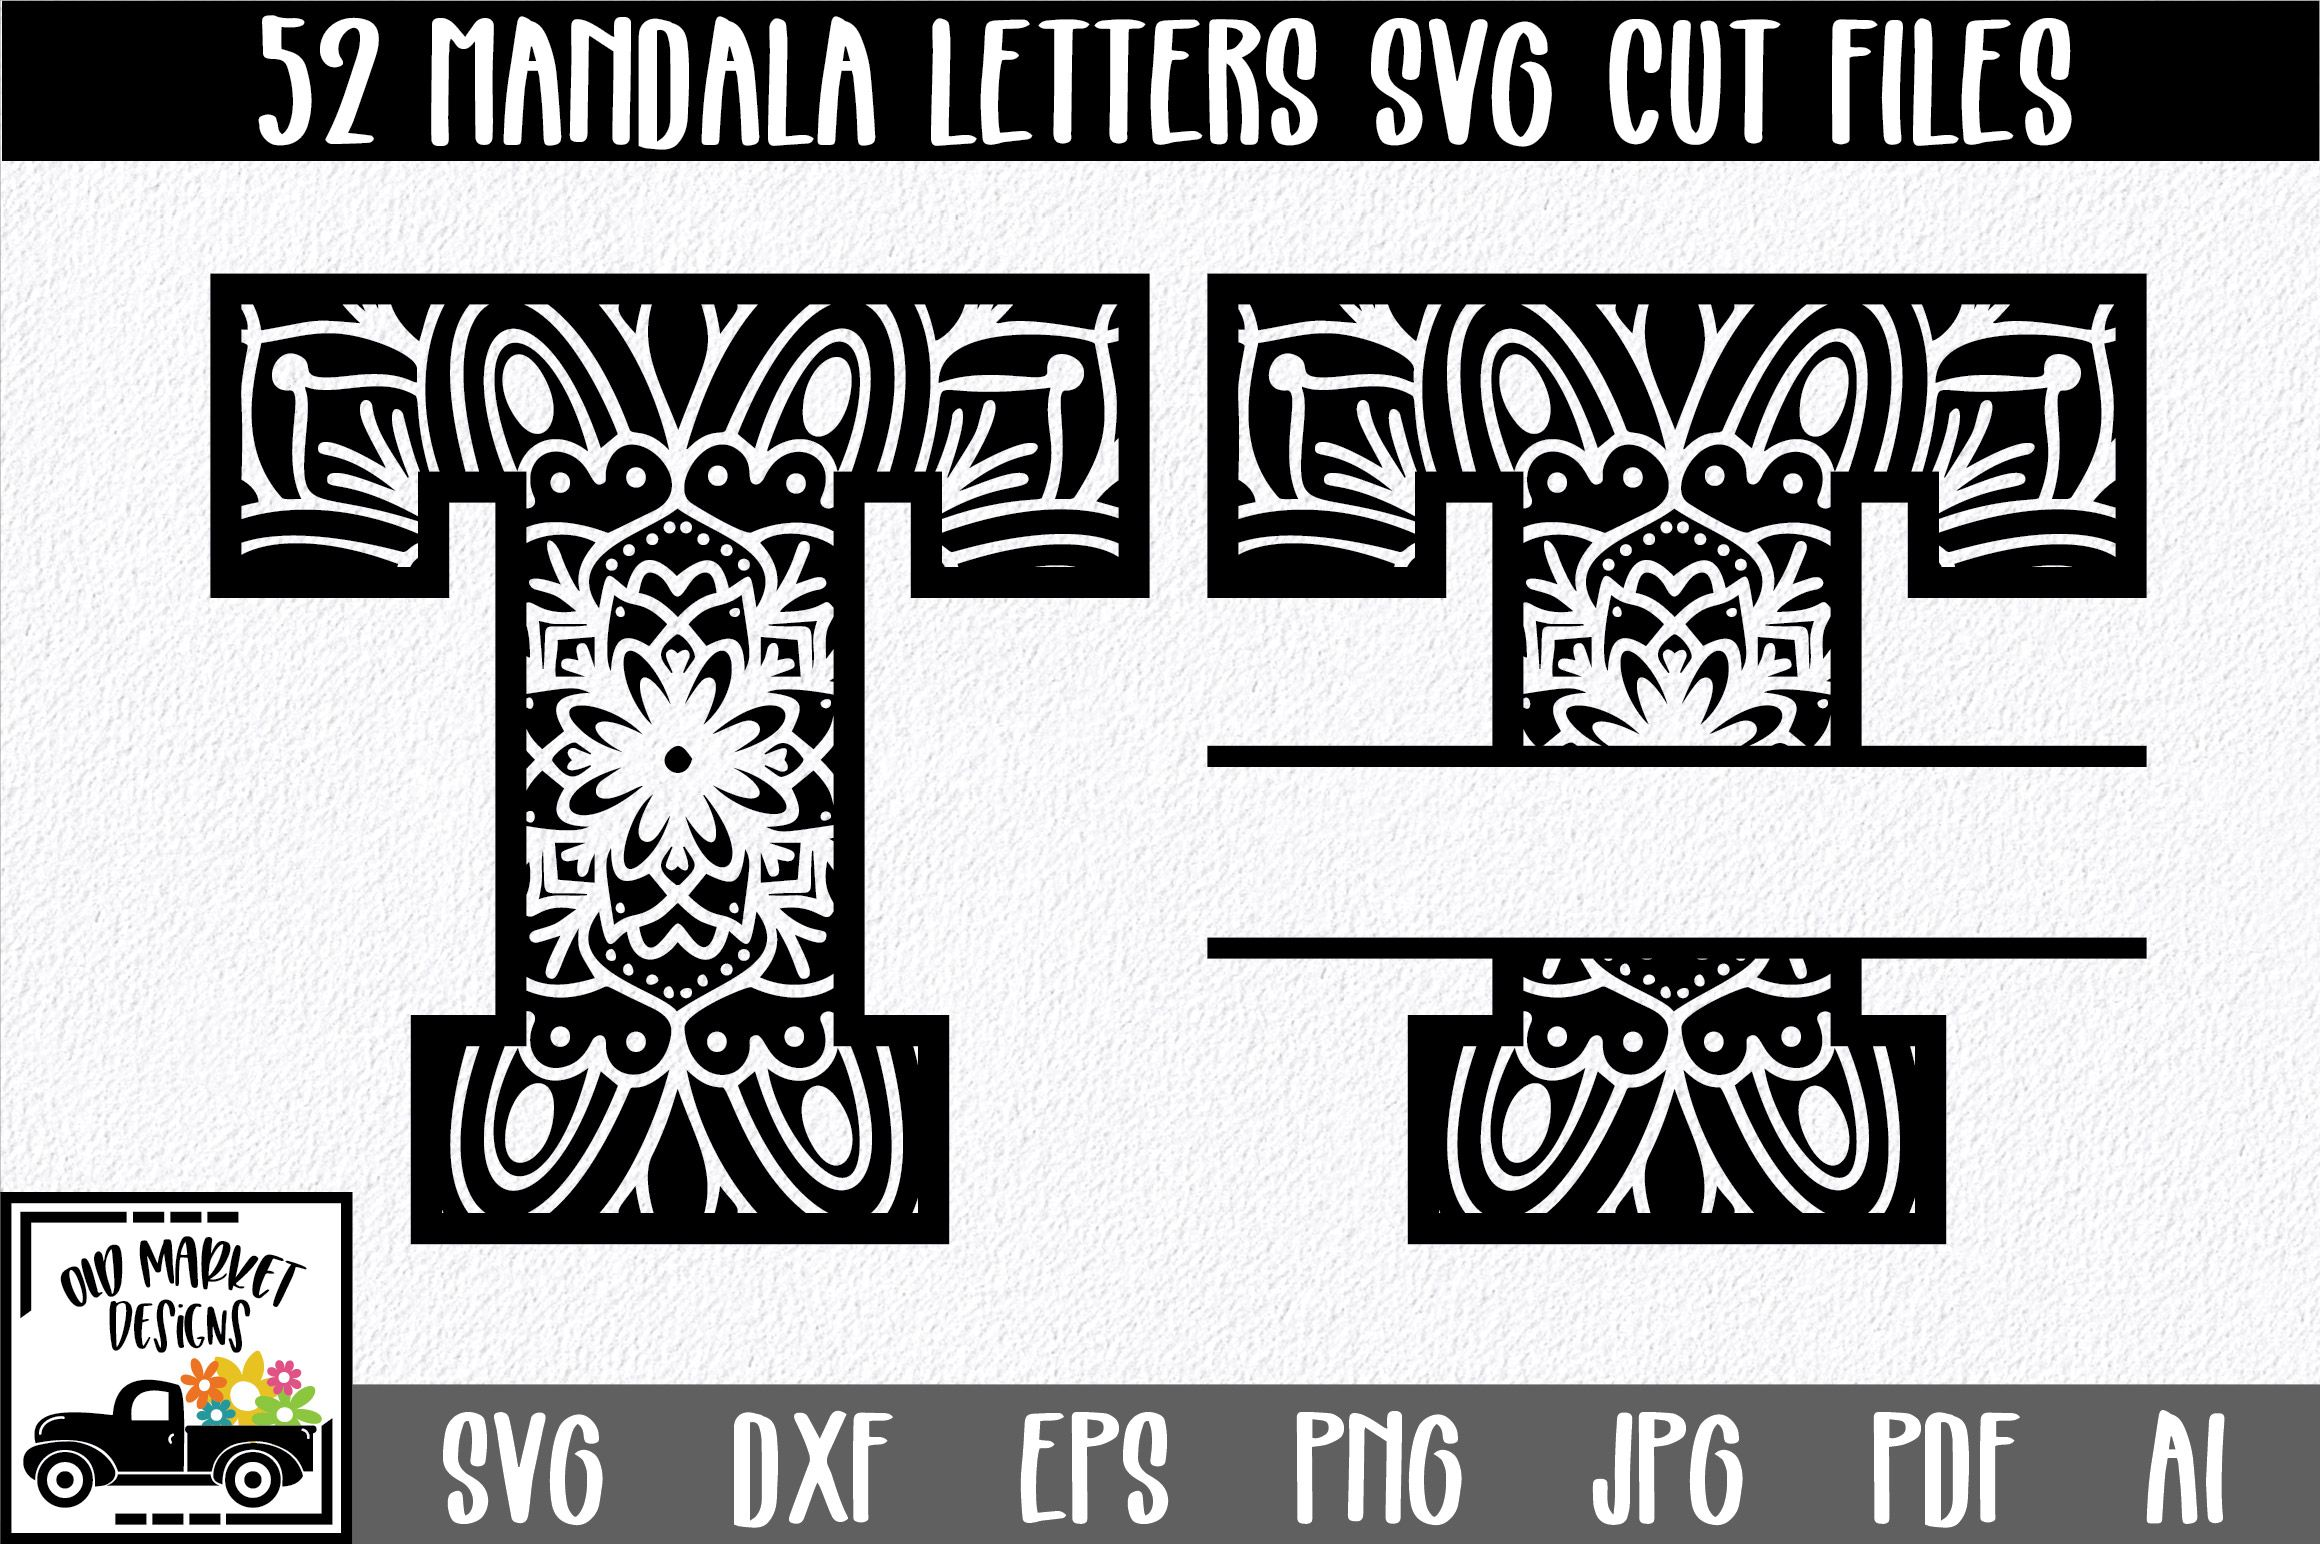 Mandala Monogram SVG Cut File Bundle  Includes 2 Sets is part of Svg cuts, Svg cutting files, Monogram svg, Mandala monograms, Cutting files, Svg - Purchase includes Zip file containing SVG, PNG, DXF, JPEG, PDF, EPS and AI file types Compatible with Silhouette Studio, Cricut Design Space, Scan N Cut, Adobe Illustrator and other cutting and design programs So Fontsy Standard Commercial Use License Also available for this product Enterprise License for High Volume and Print on Demand Services  $299